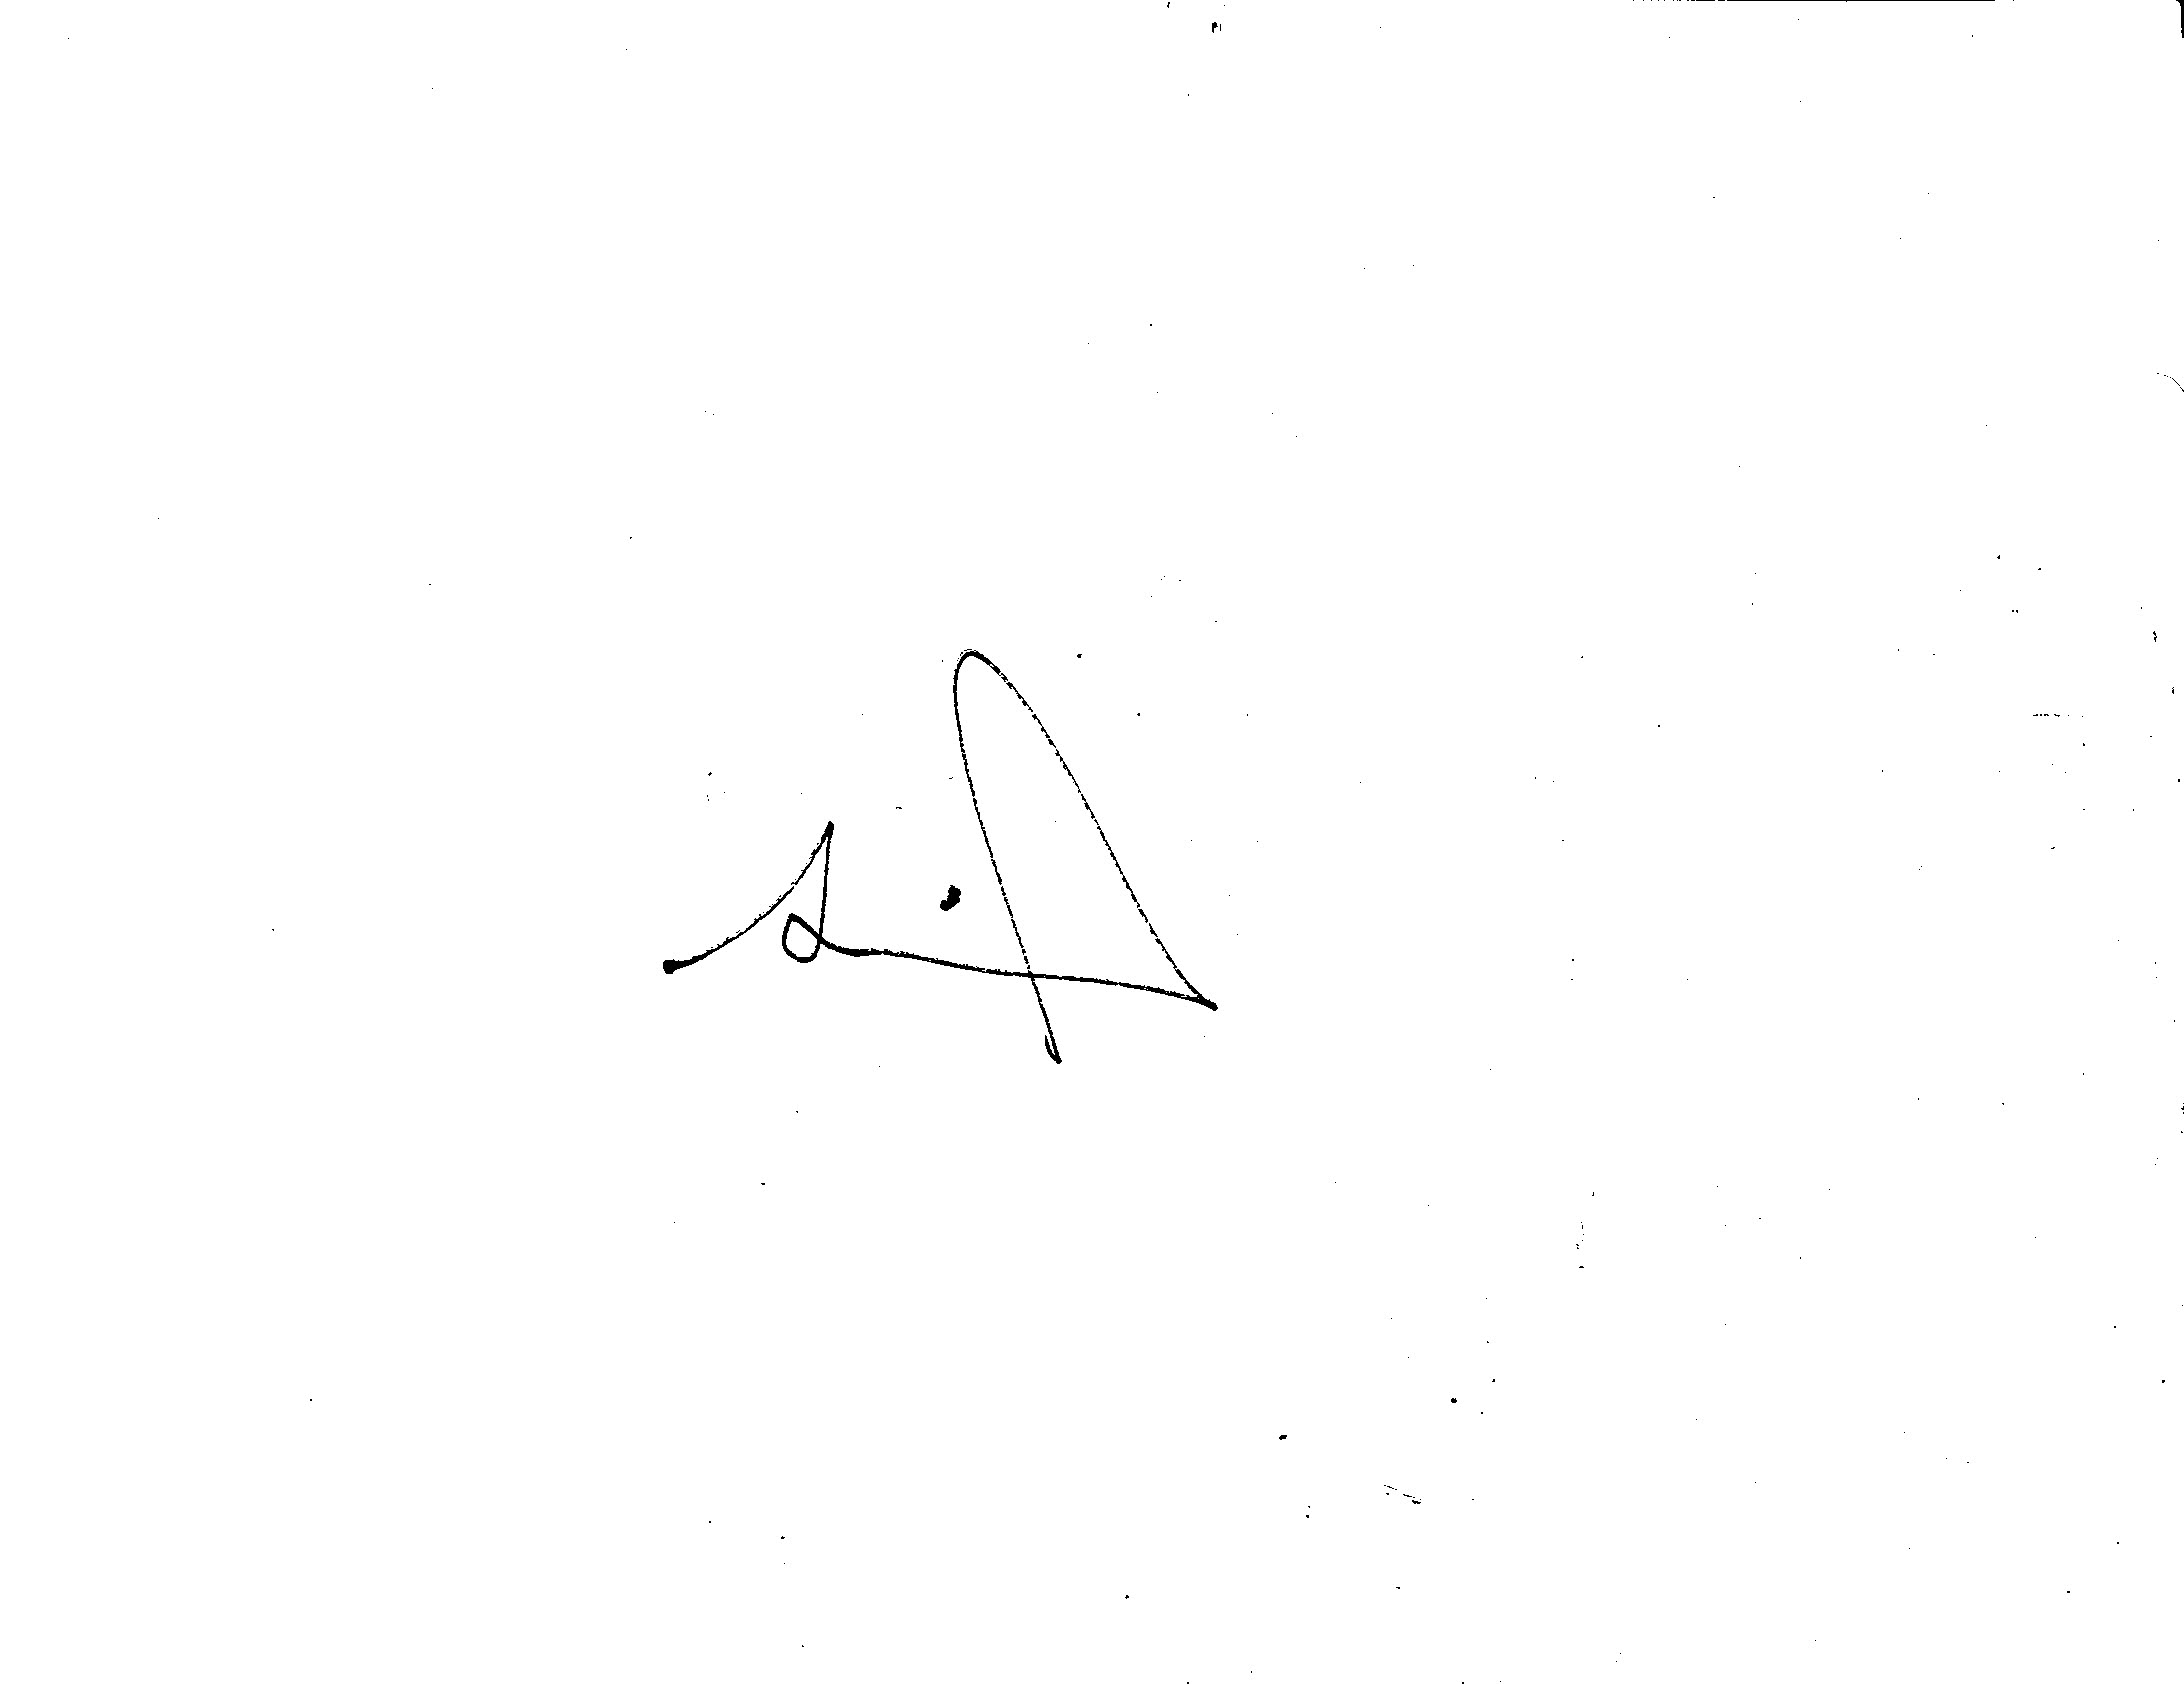 Stephanie Bird's Signature